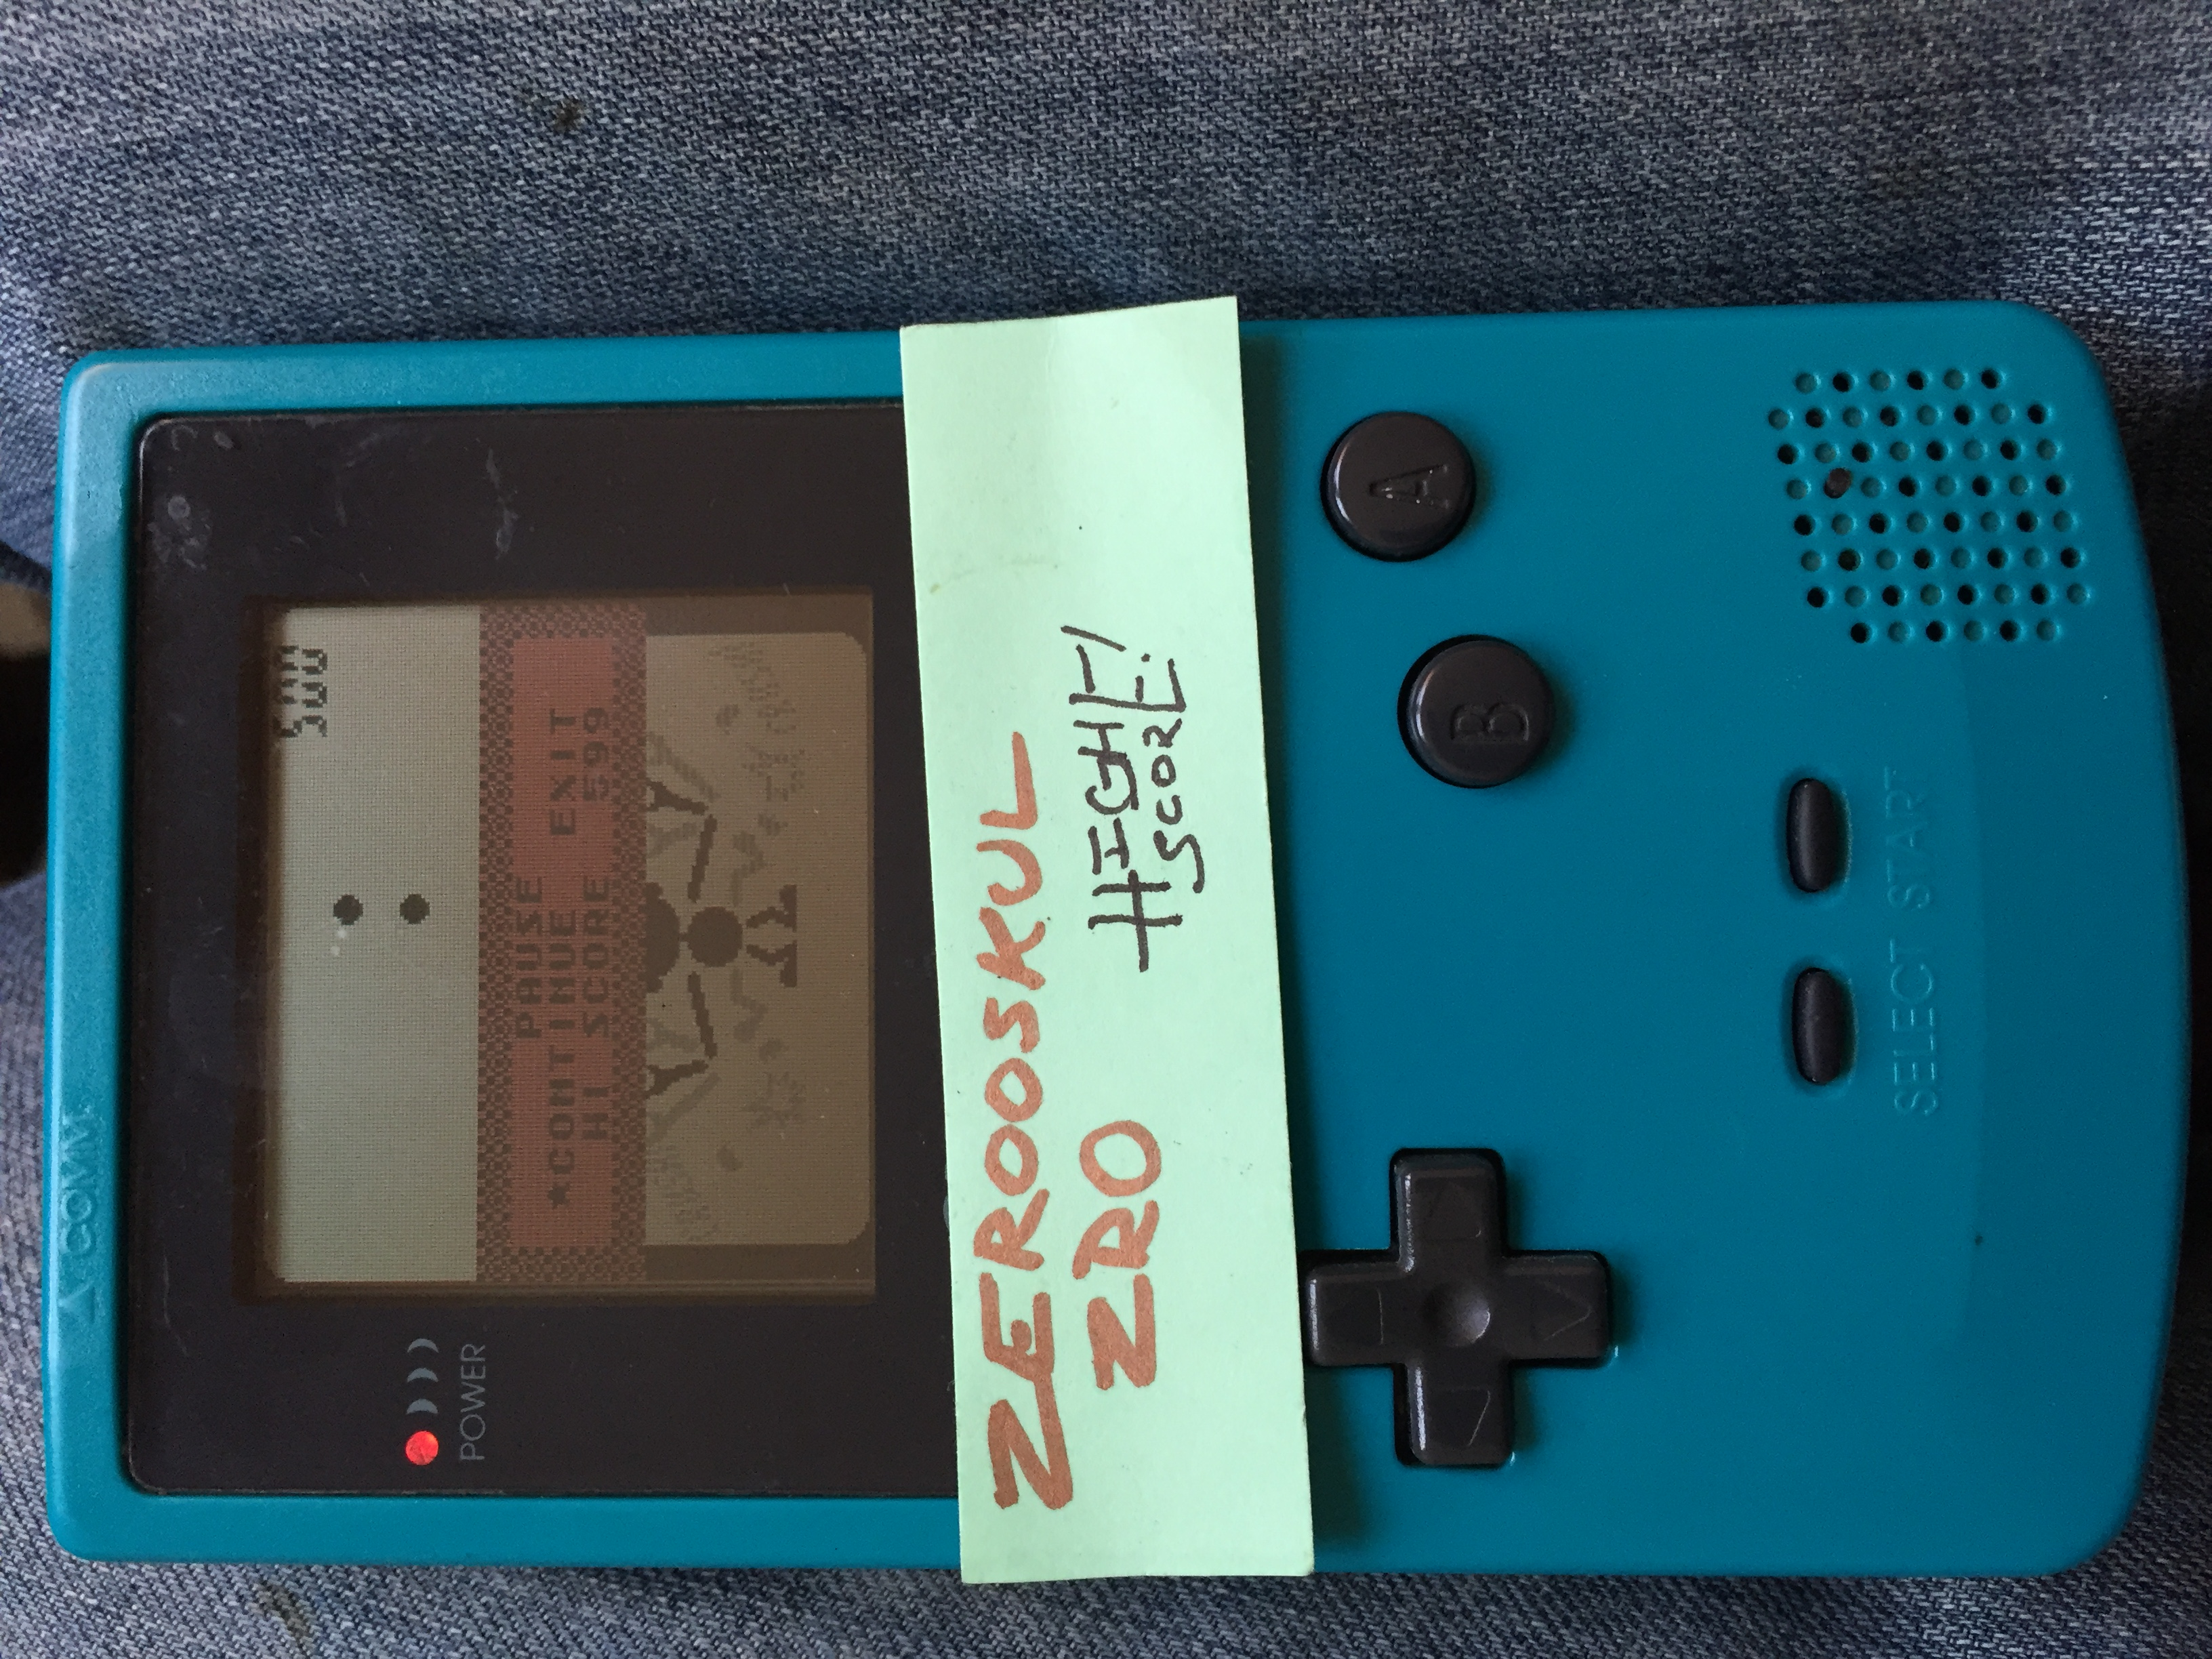 zerooskul: Game & Watch Gallery 2: Ball [Classic: Easy] (Game Boy Color) 668 points on 2018-07-01 12:23:02